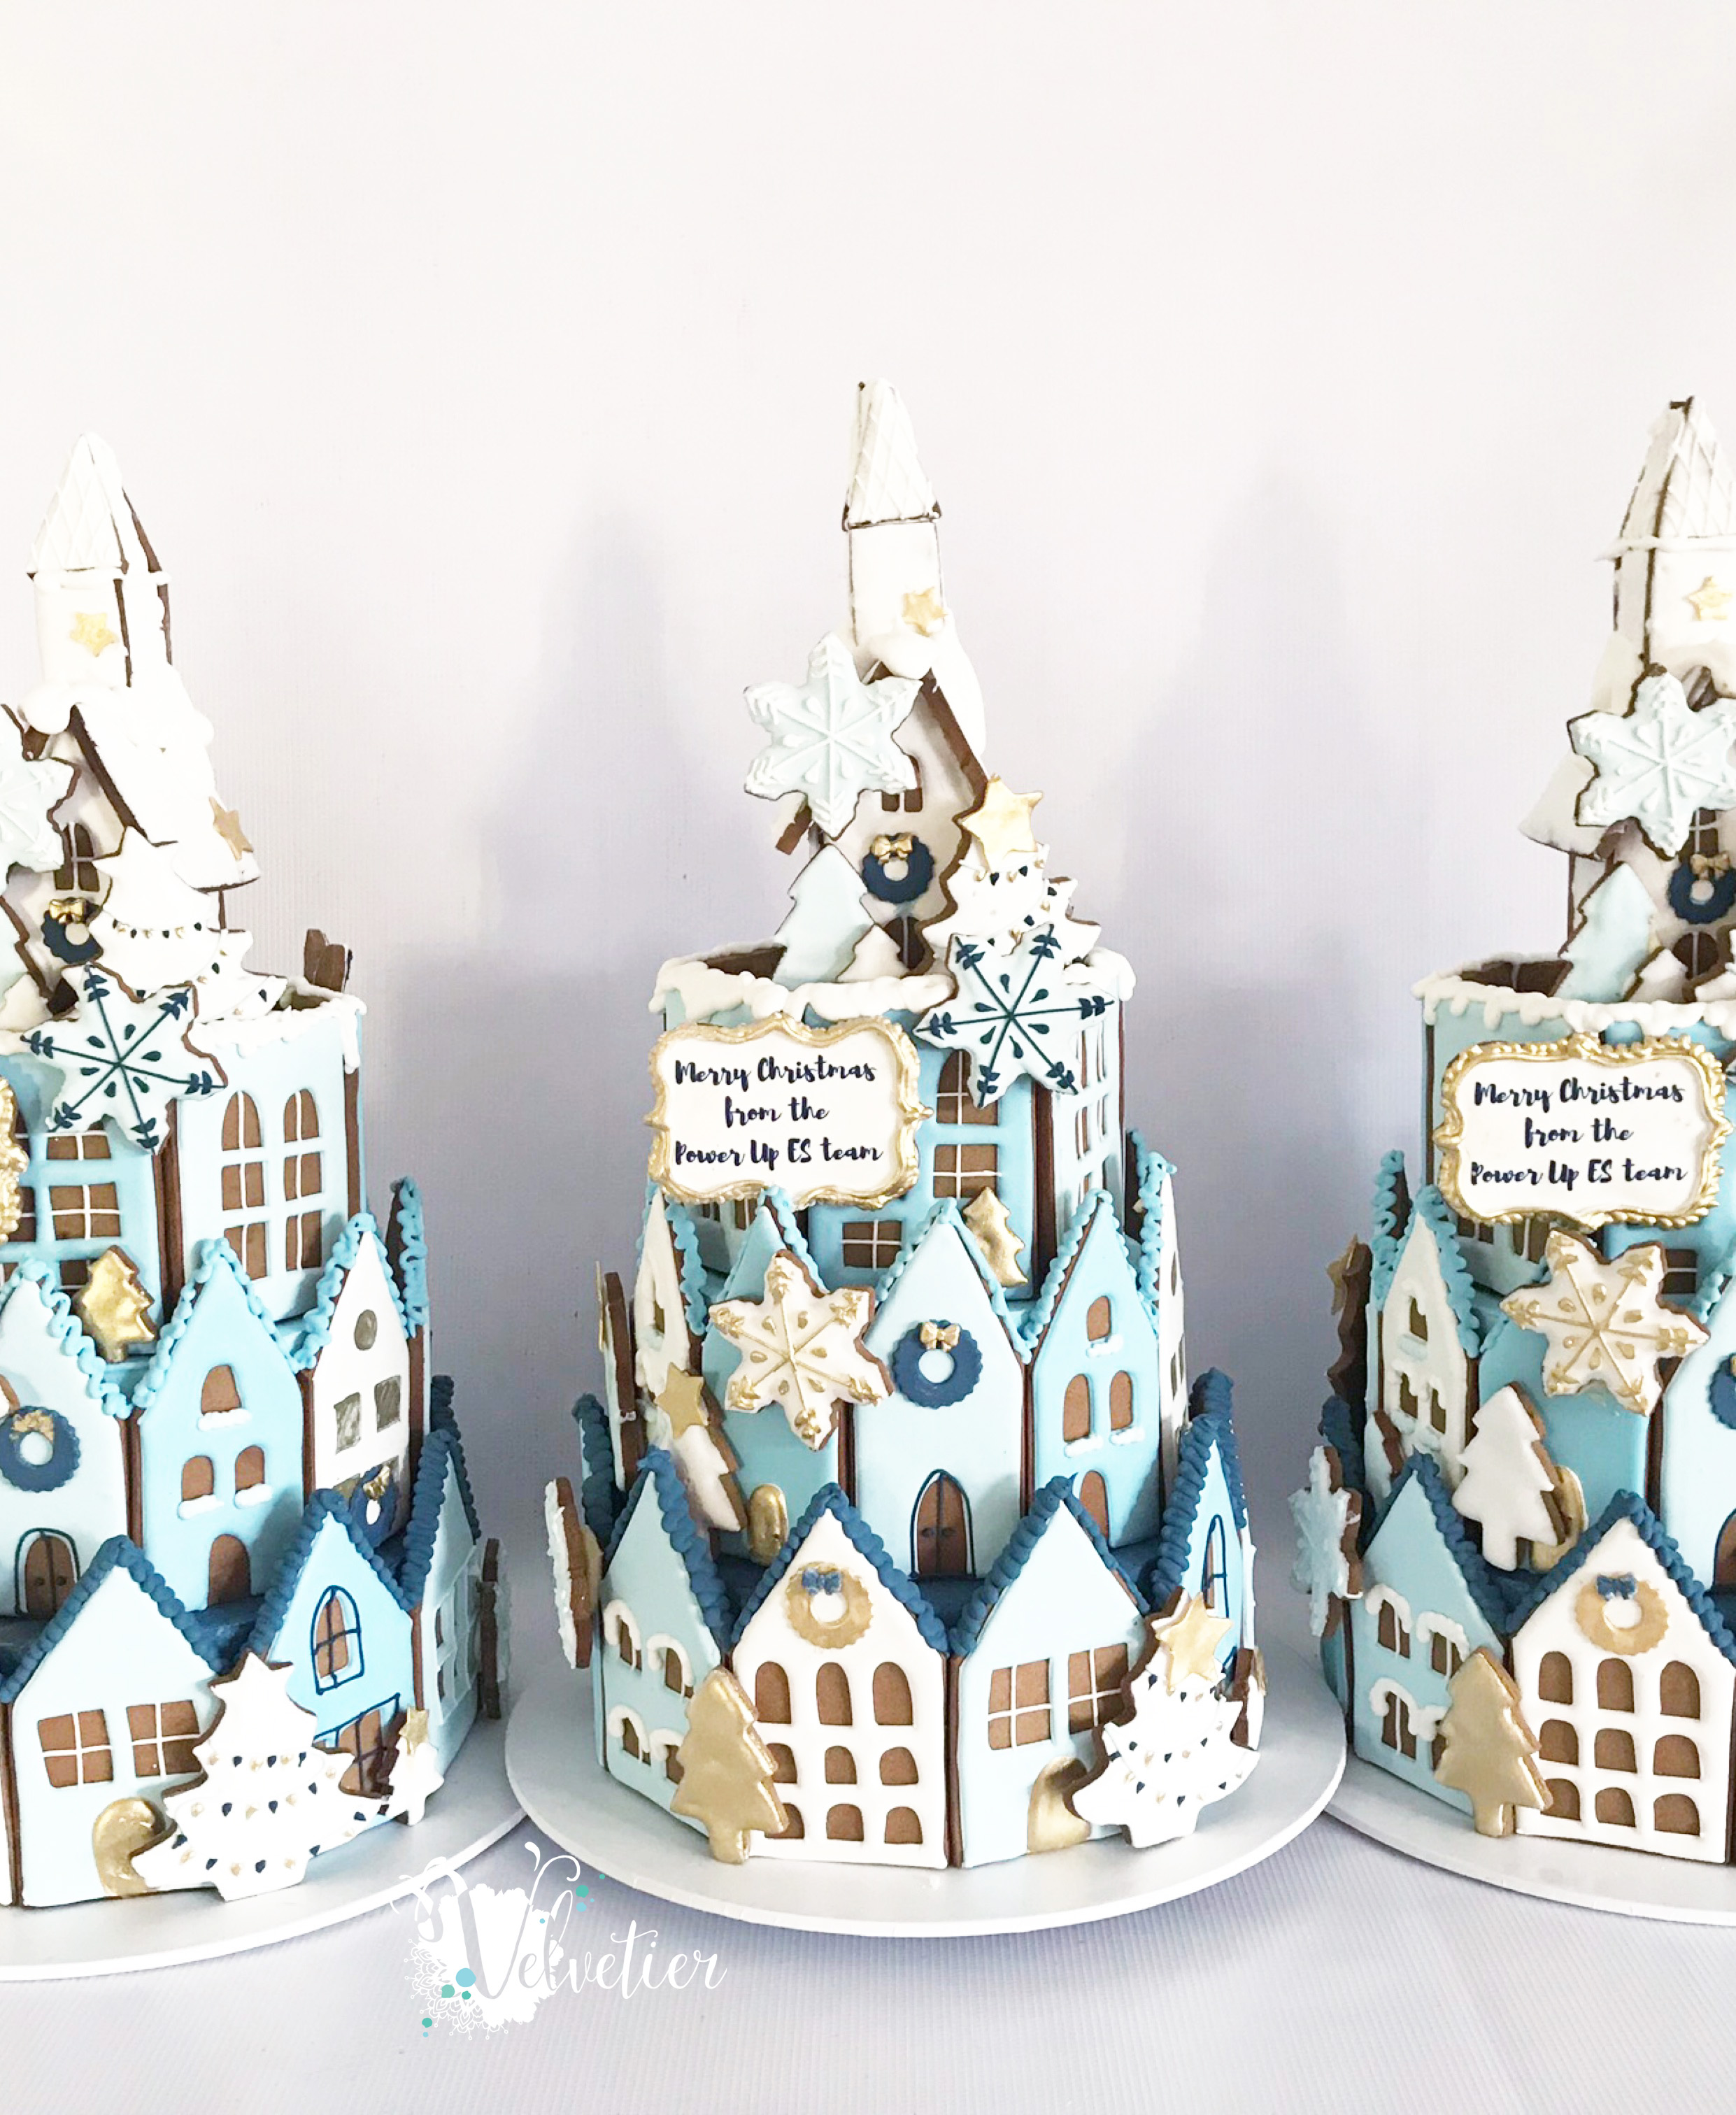 Tiered gingerbread houses in brand colours for corporate gifts by Velvetier Brisbane